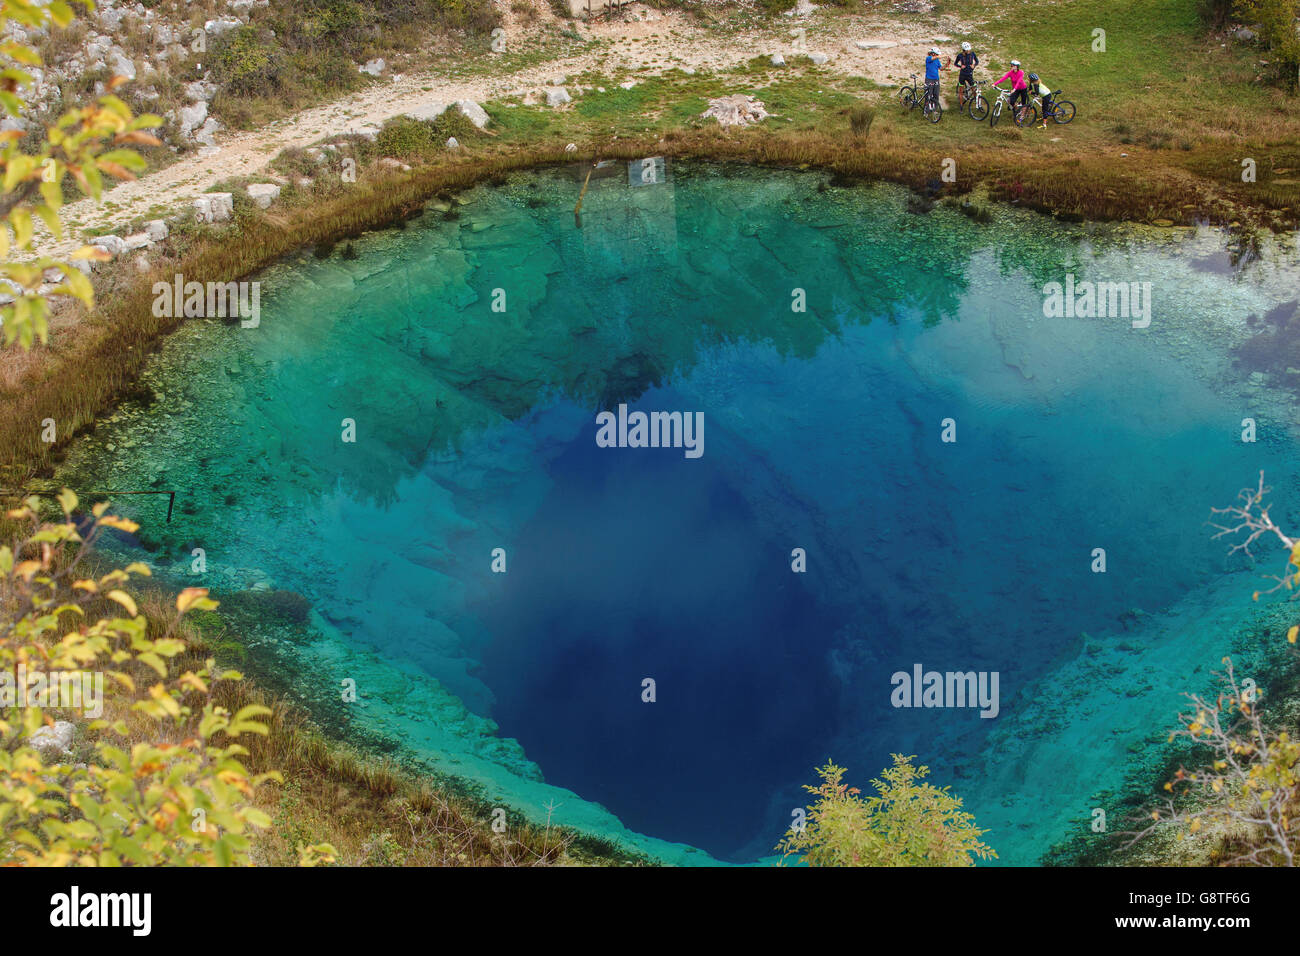 Group of mountain bikers resting on water's edge - Stock Image